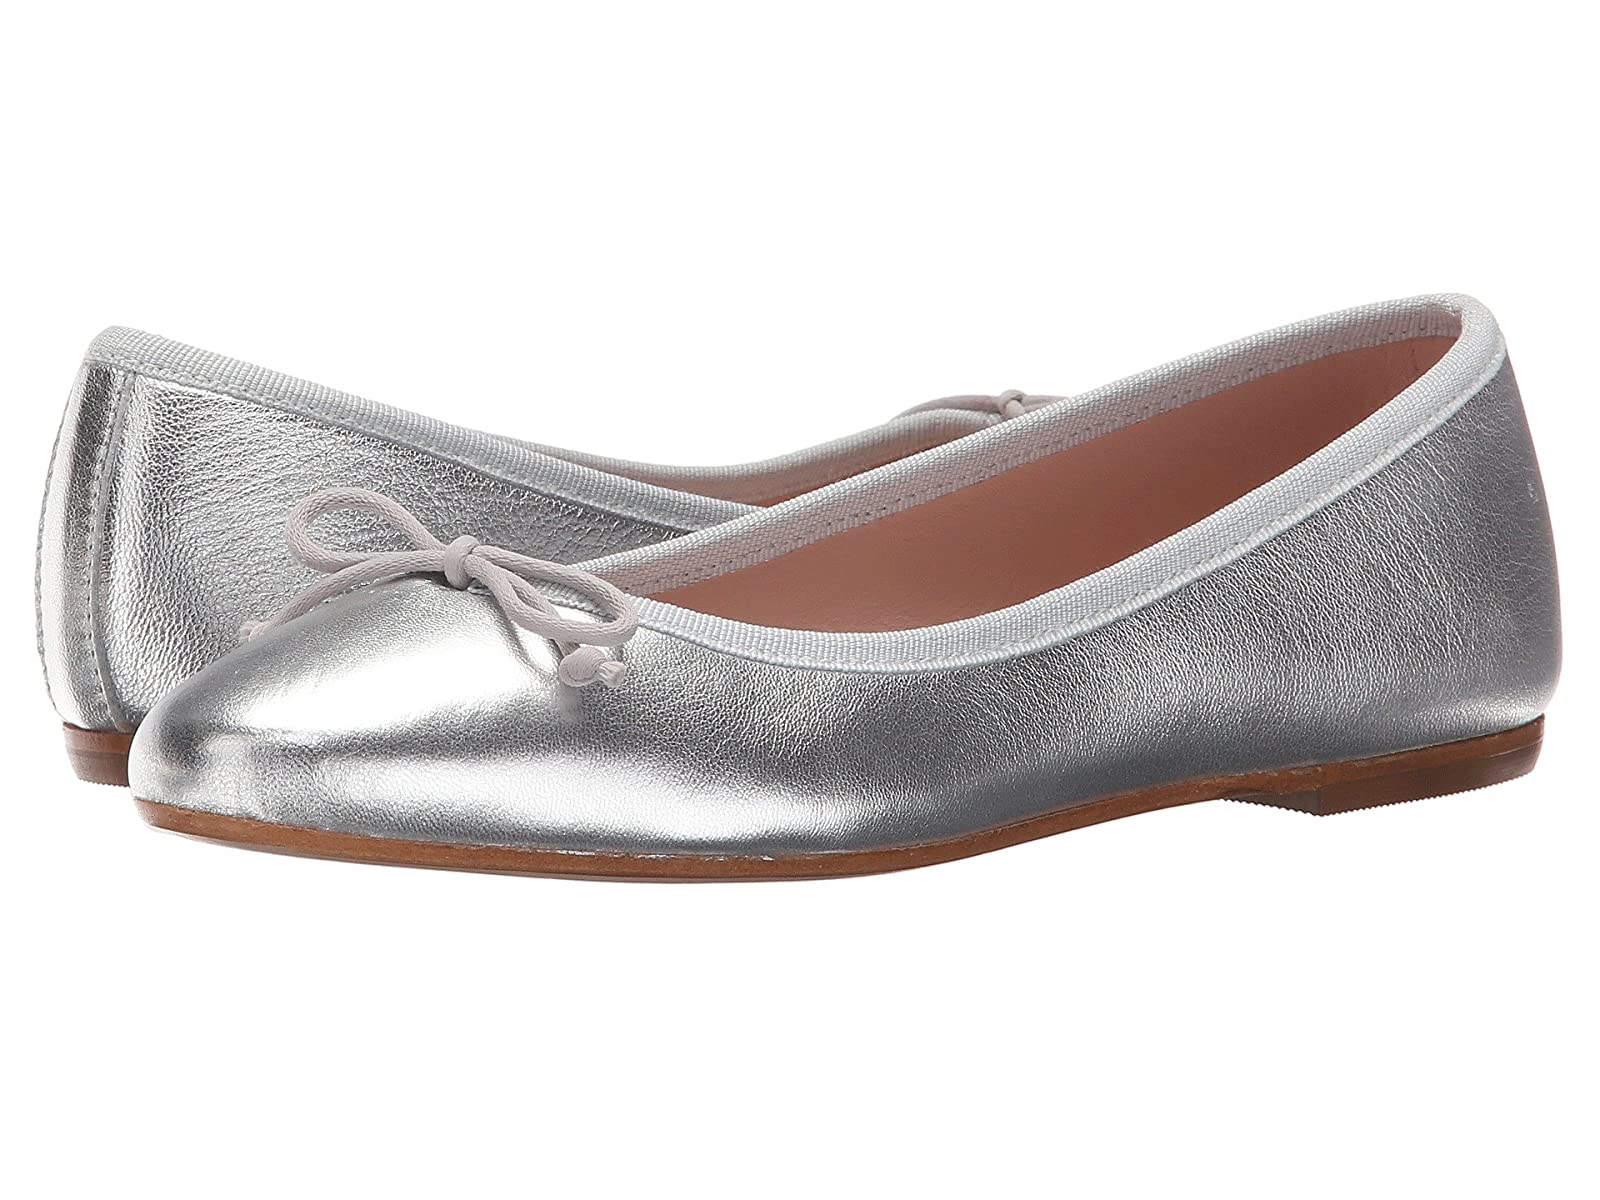 Summit by White Mountain KendallCheap and distinctive eye-catching shoes